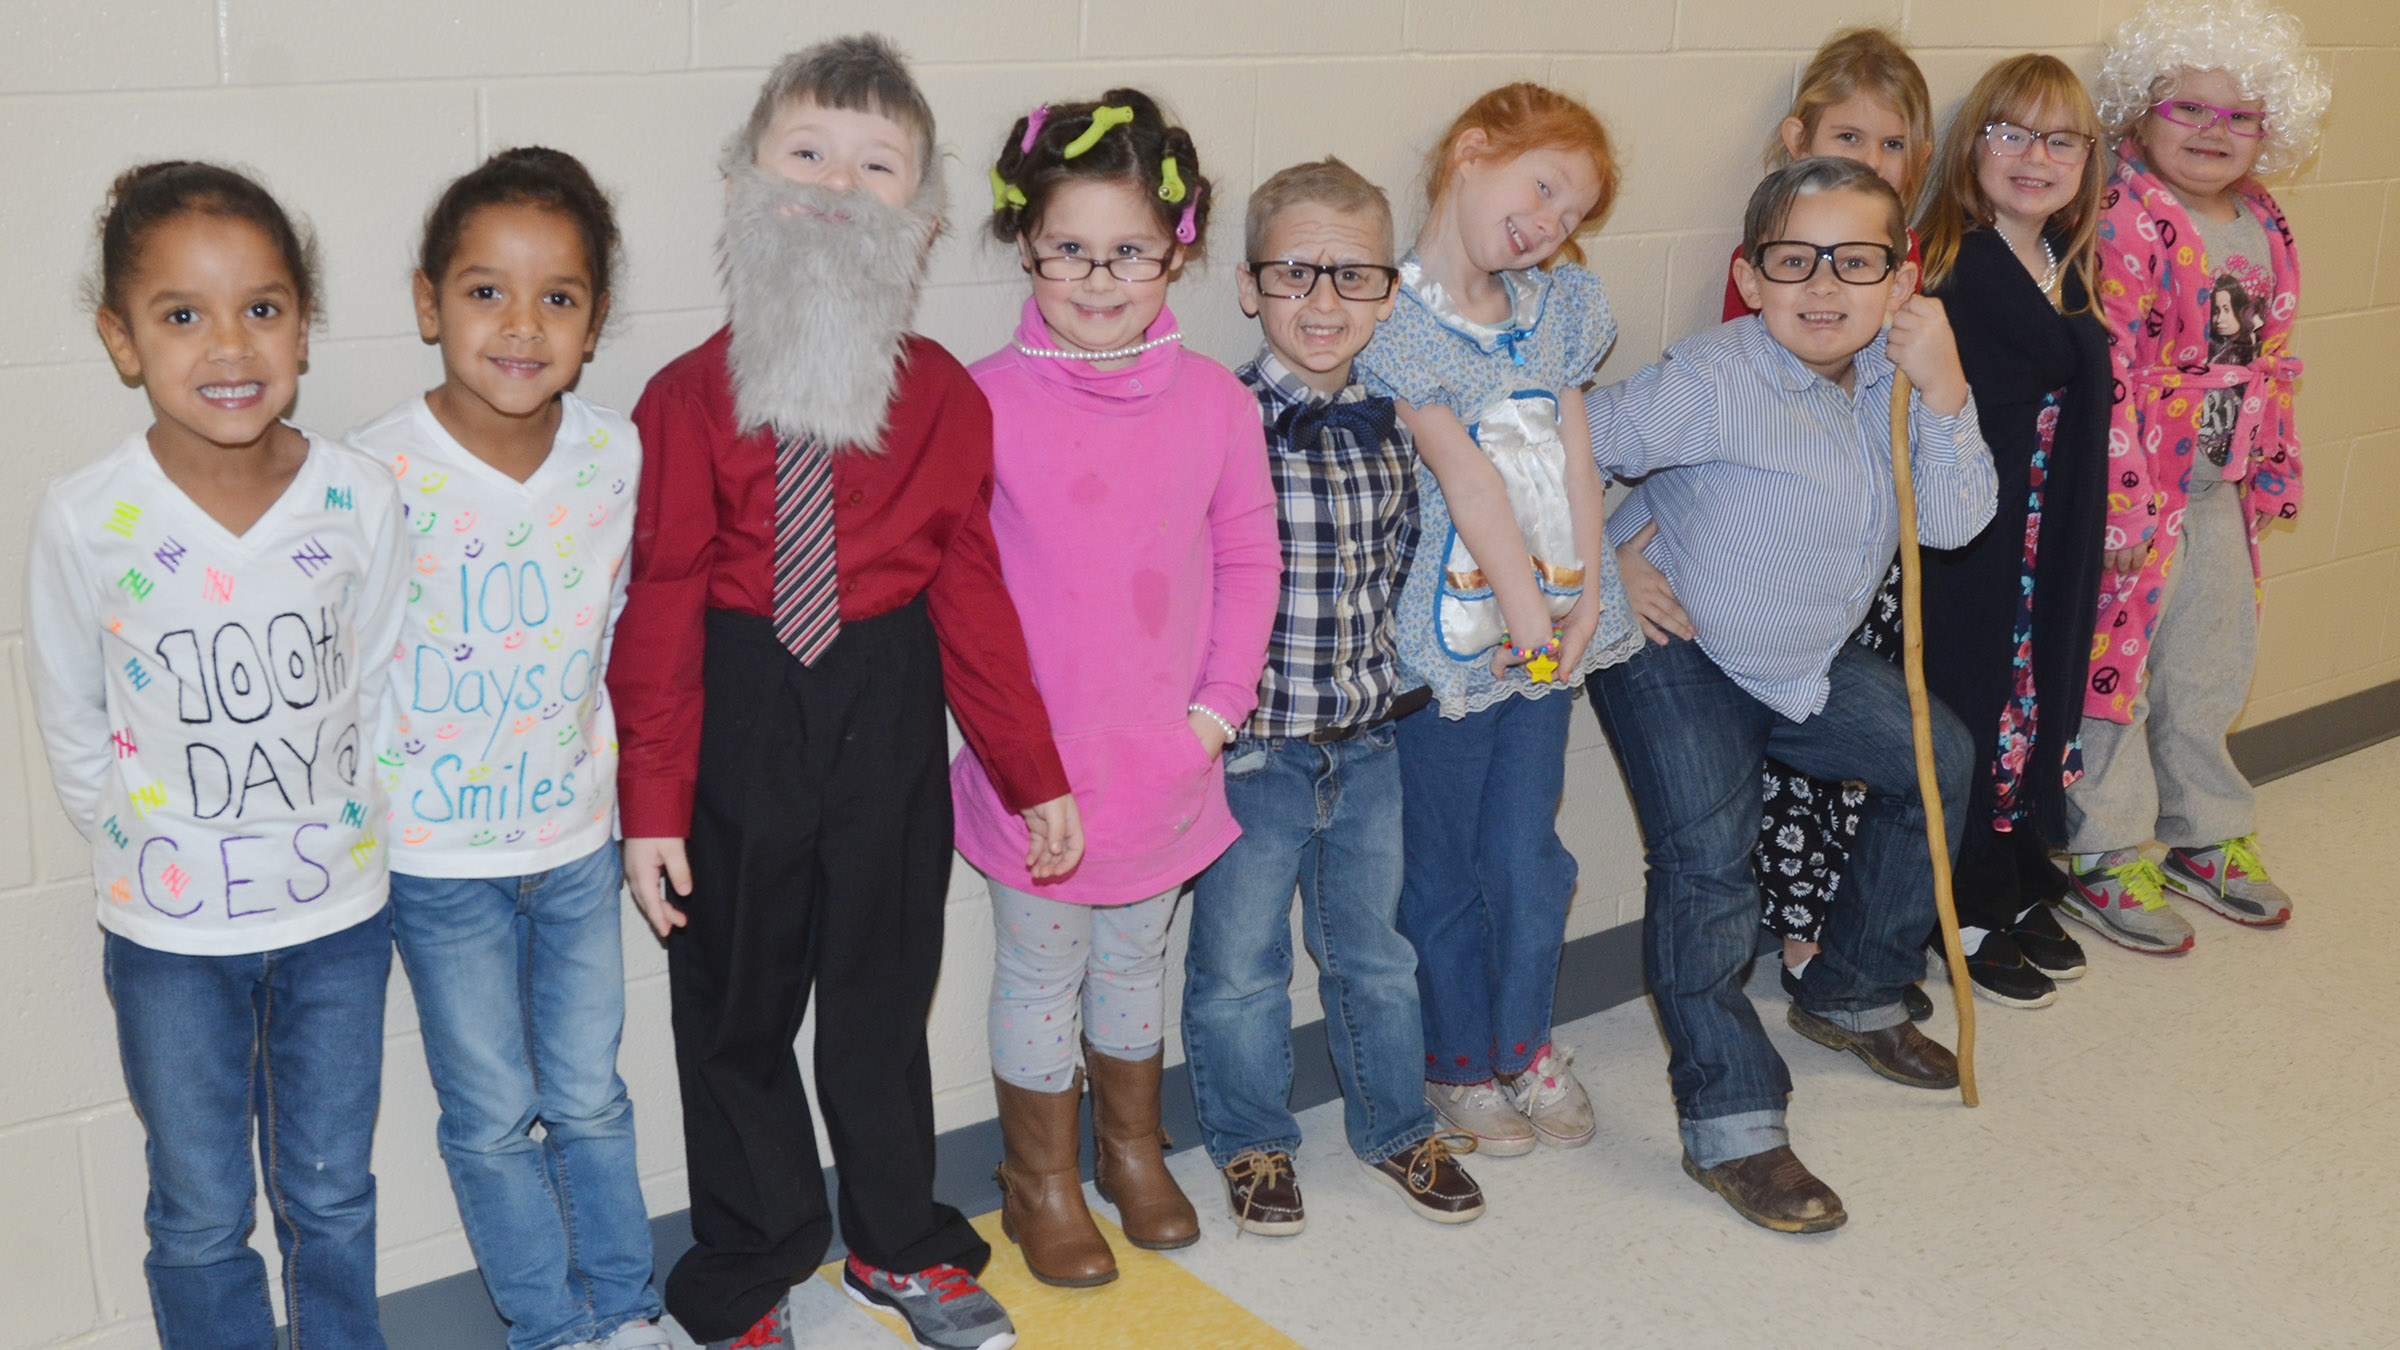 CES kindergarteners in Lisa Wiseman's class dress as if they are 100 years old.